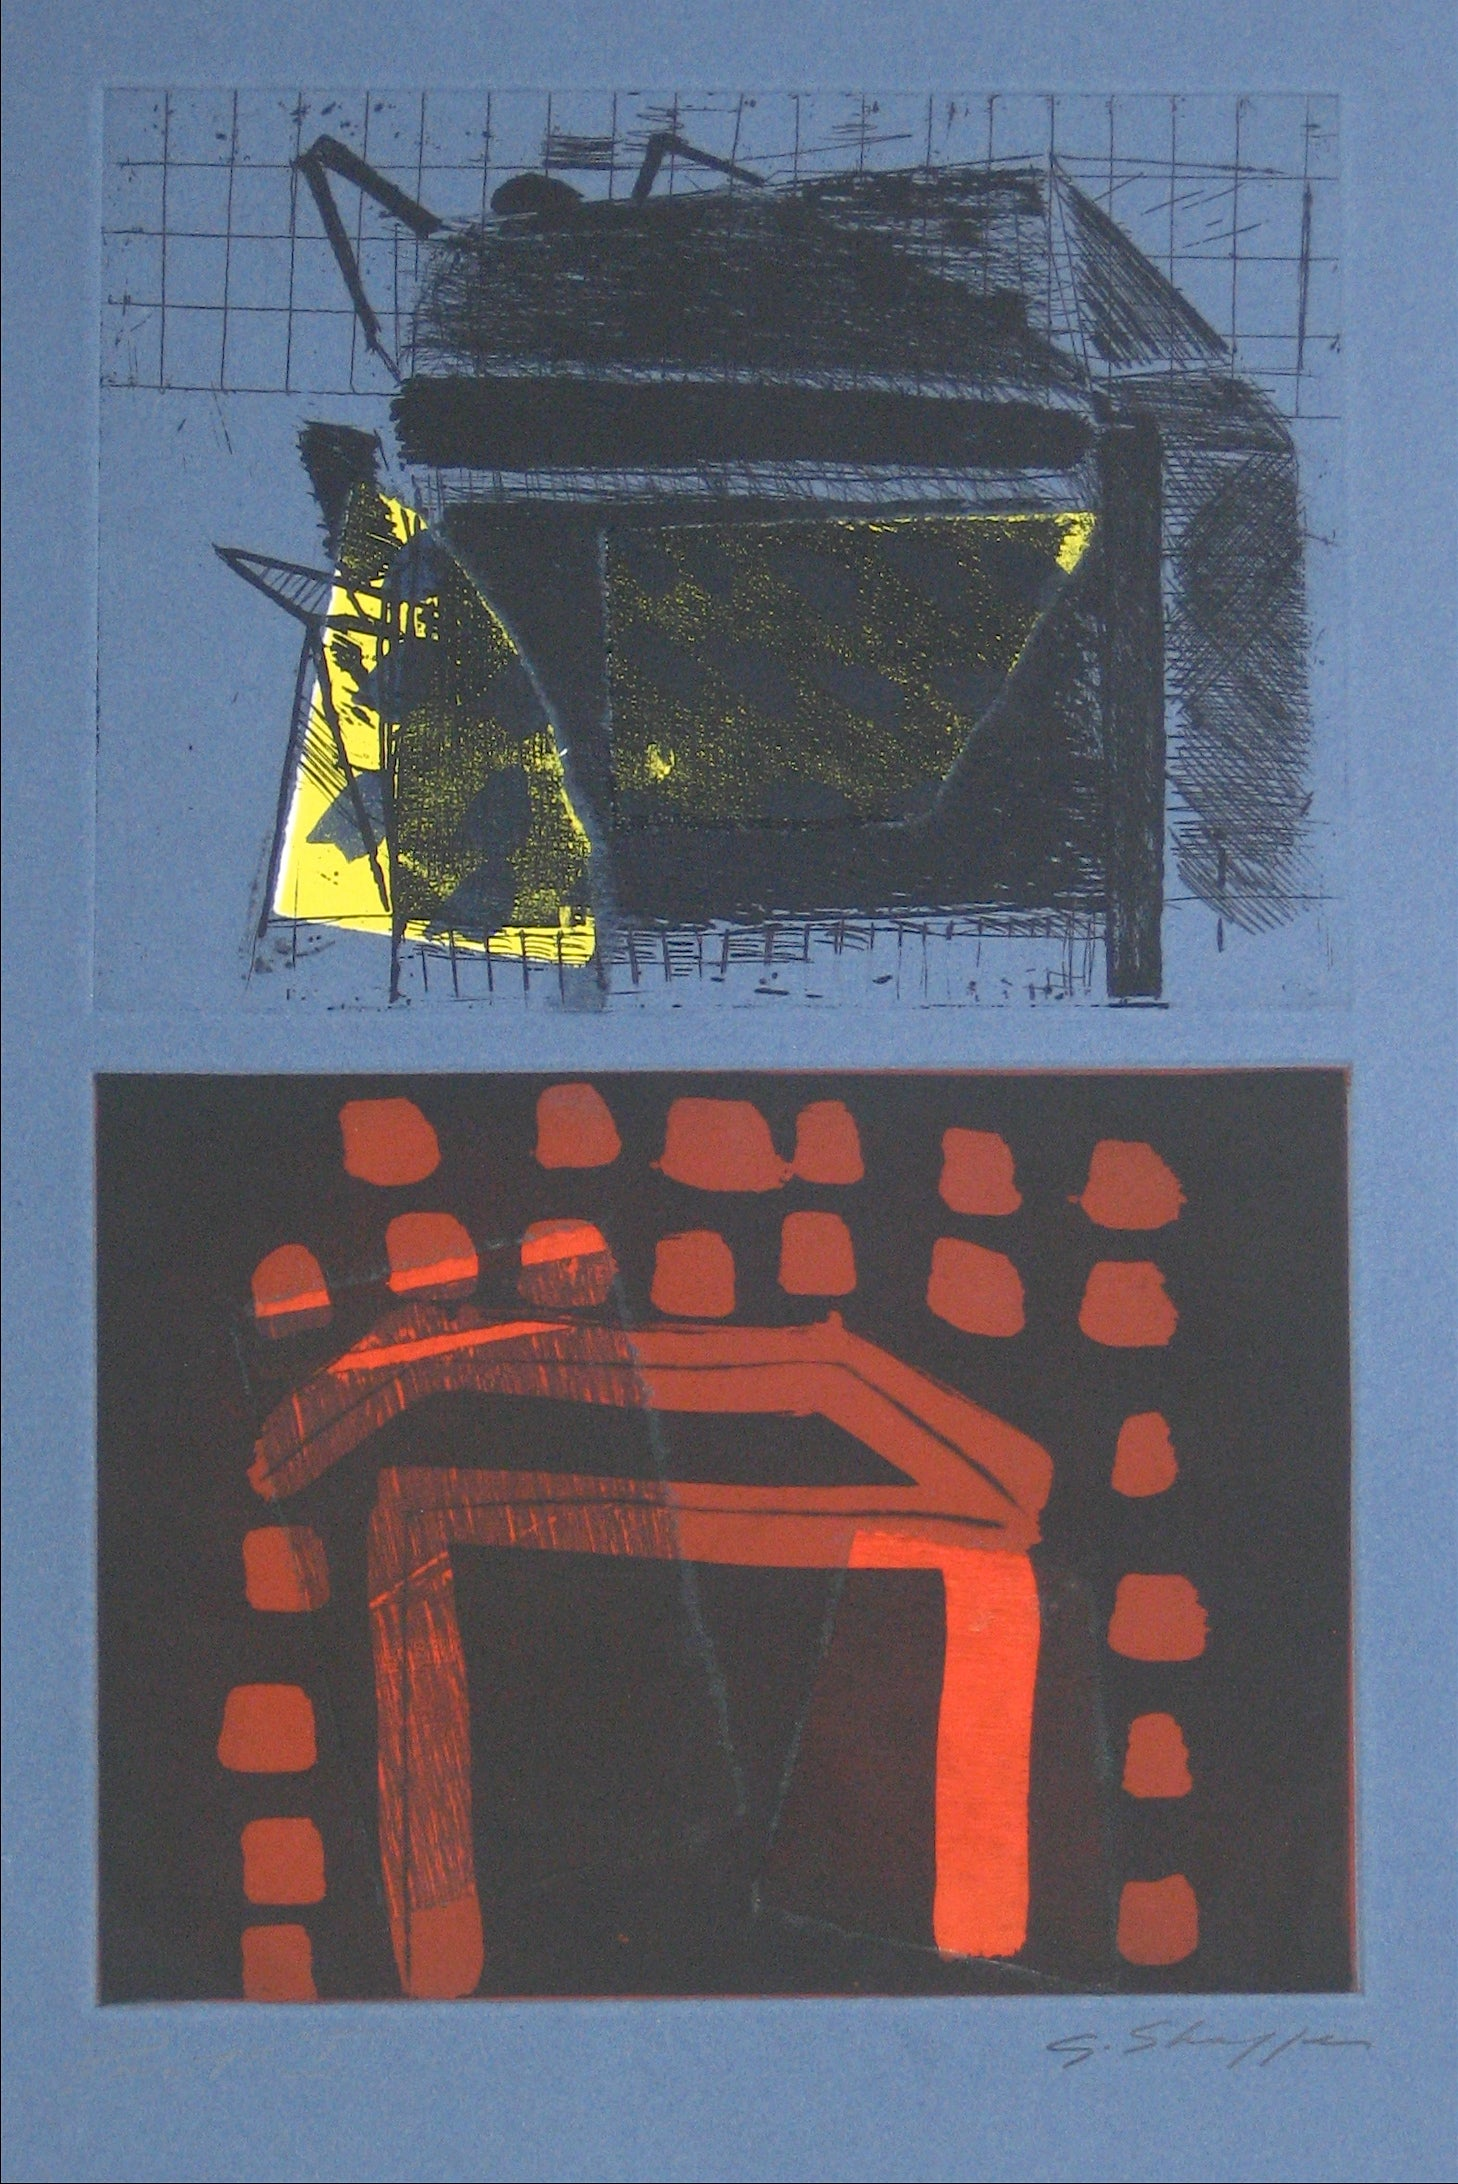 Abstracted Duel Image <br>1989 Litho & Chine Colle <br><br>#11768